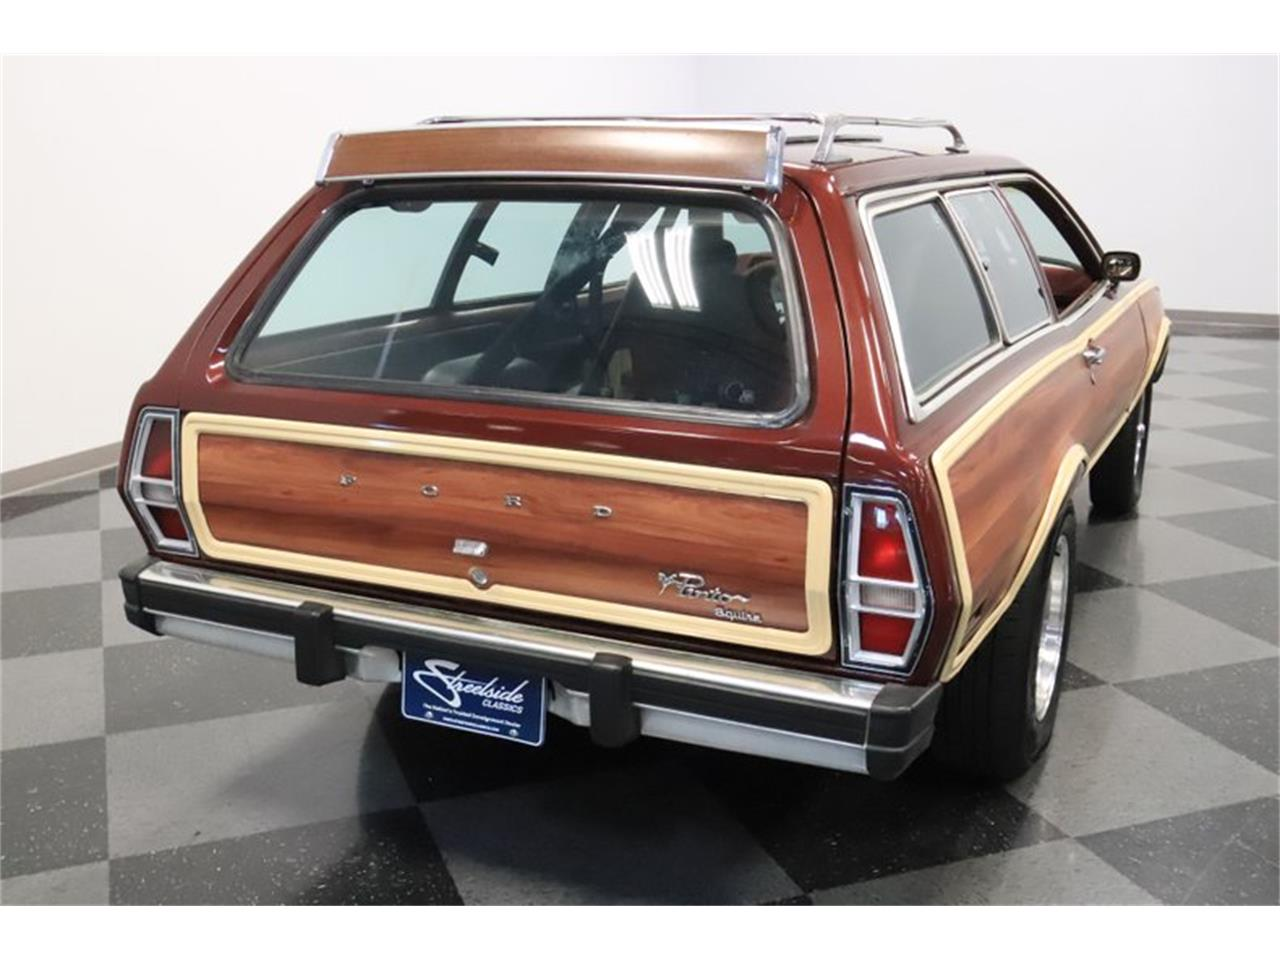 Large Picture of 1980 Ford Pinto - $24,995.00 Offered by Streetside Classics - Phoenix - QZK7